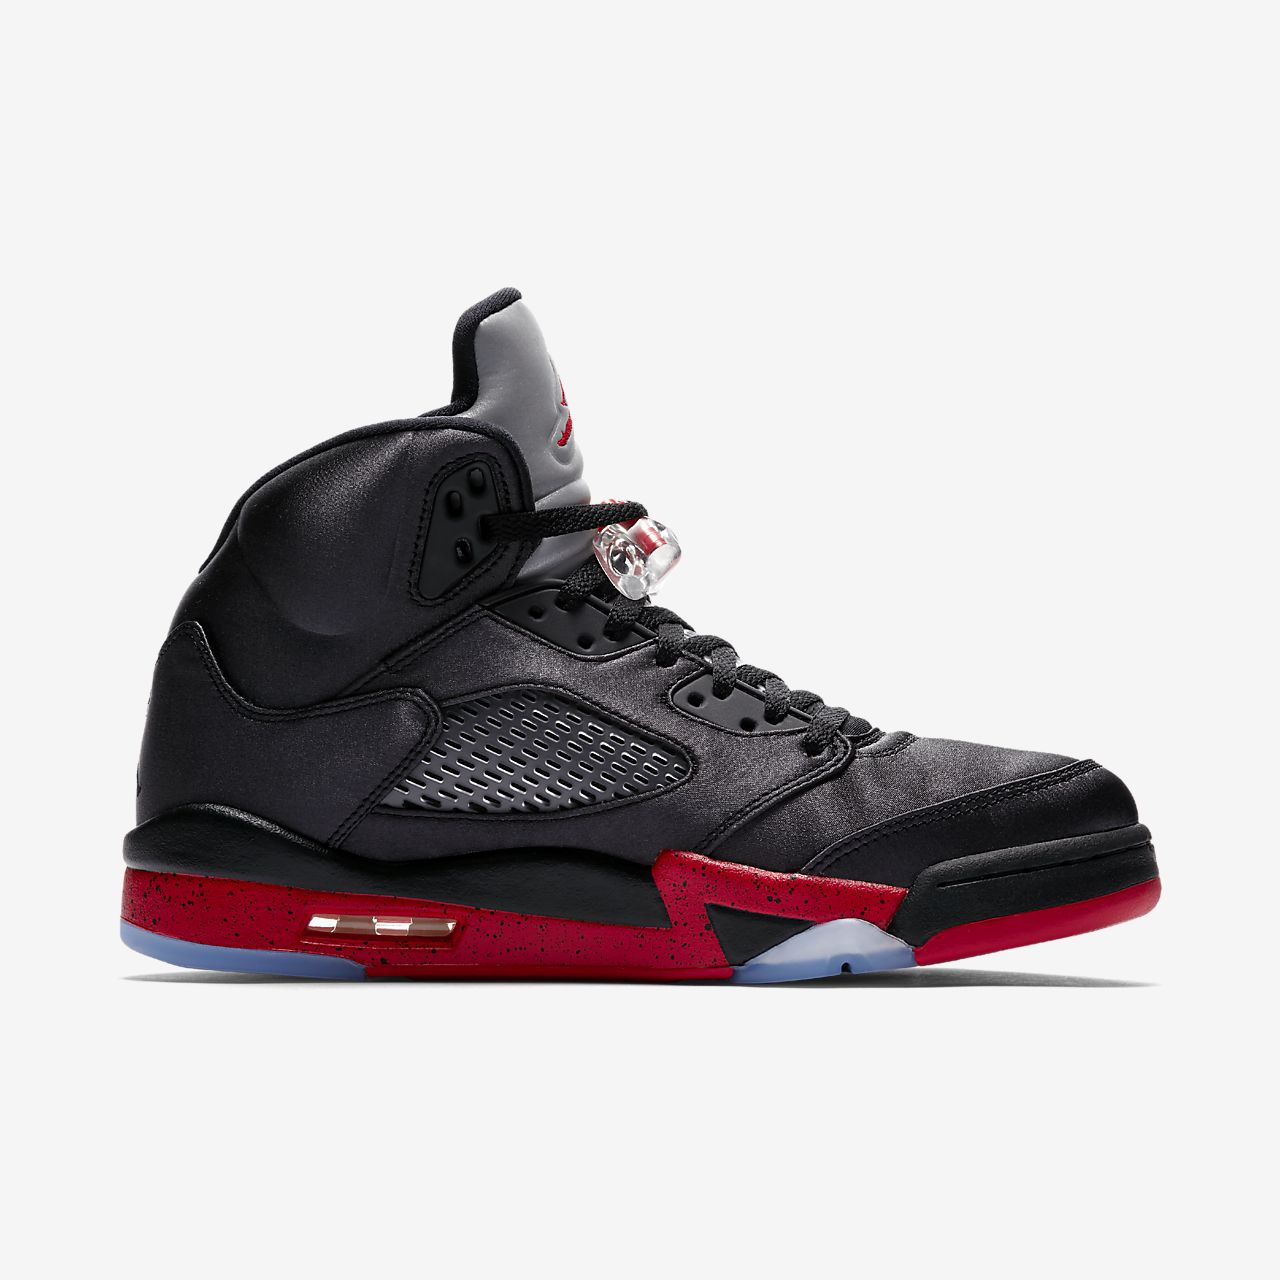 new arrival 81f57 19b61 ... Air Jordan 5 Retro Men s Shoe